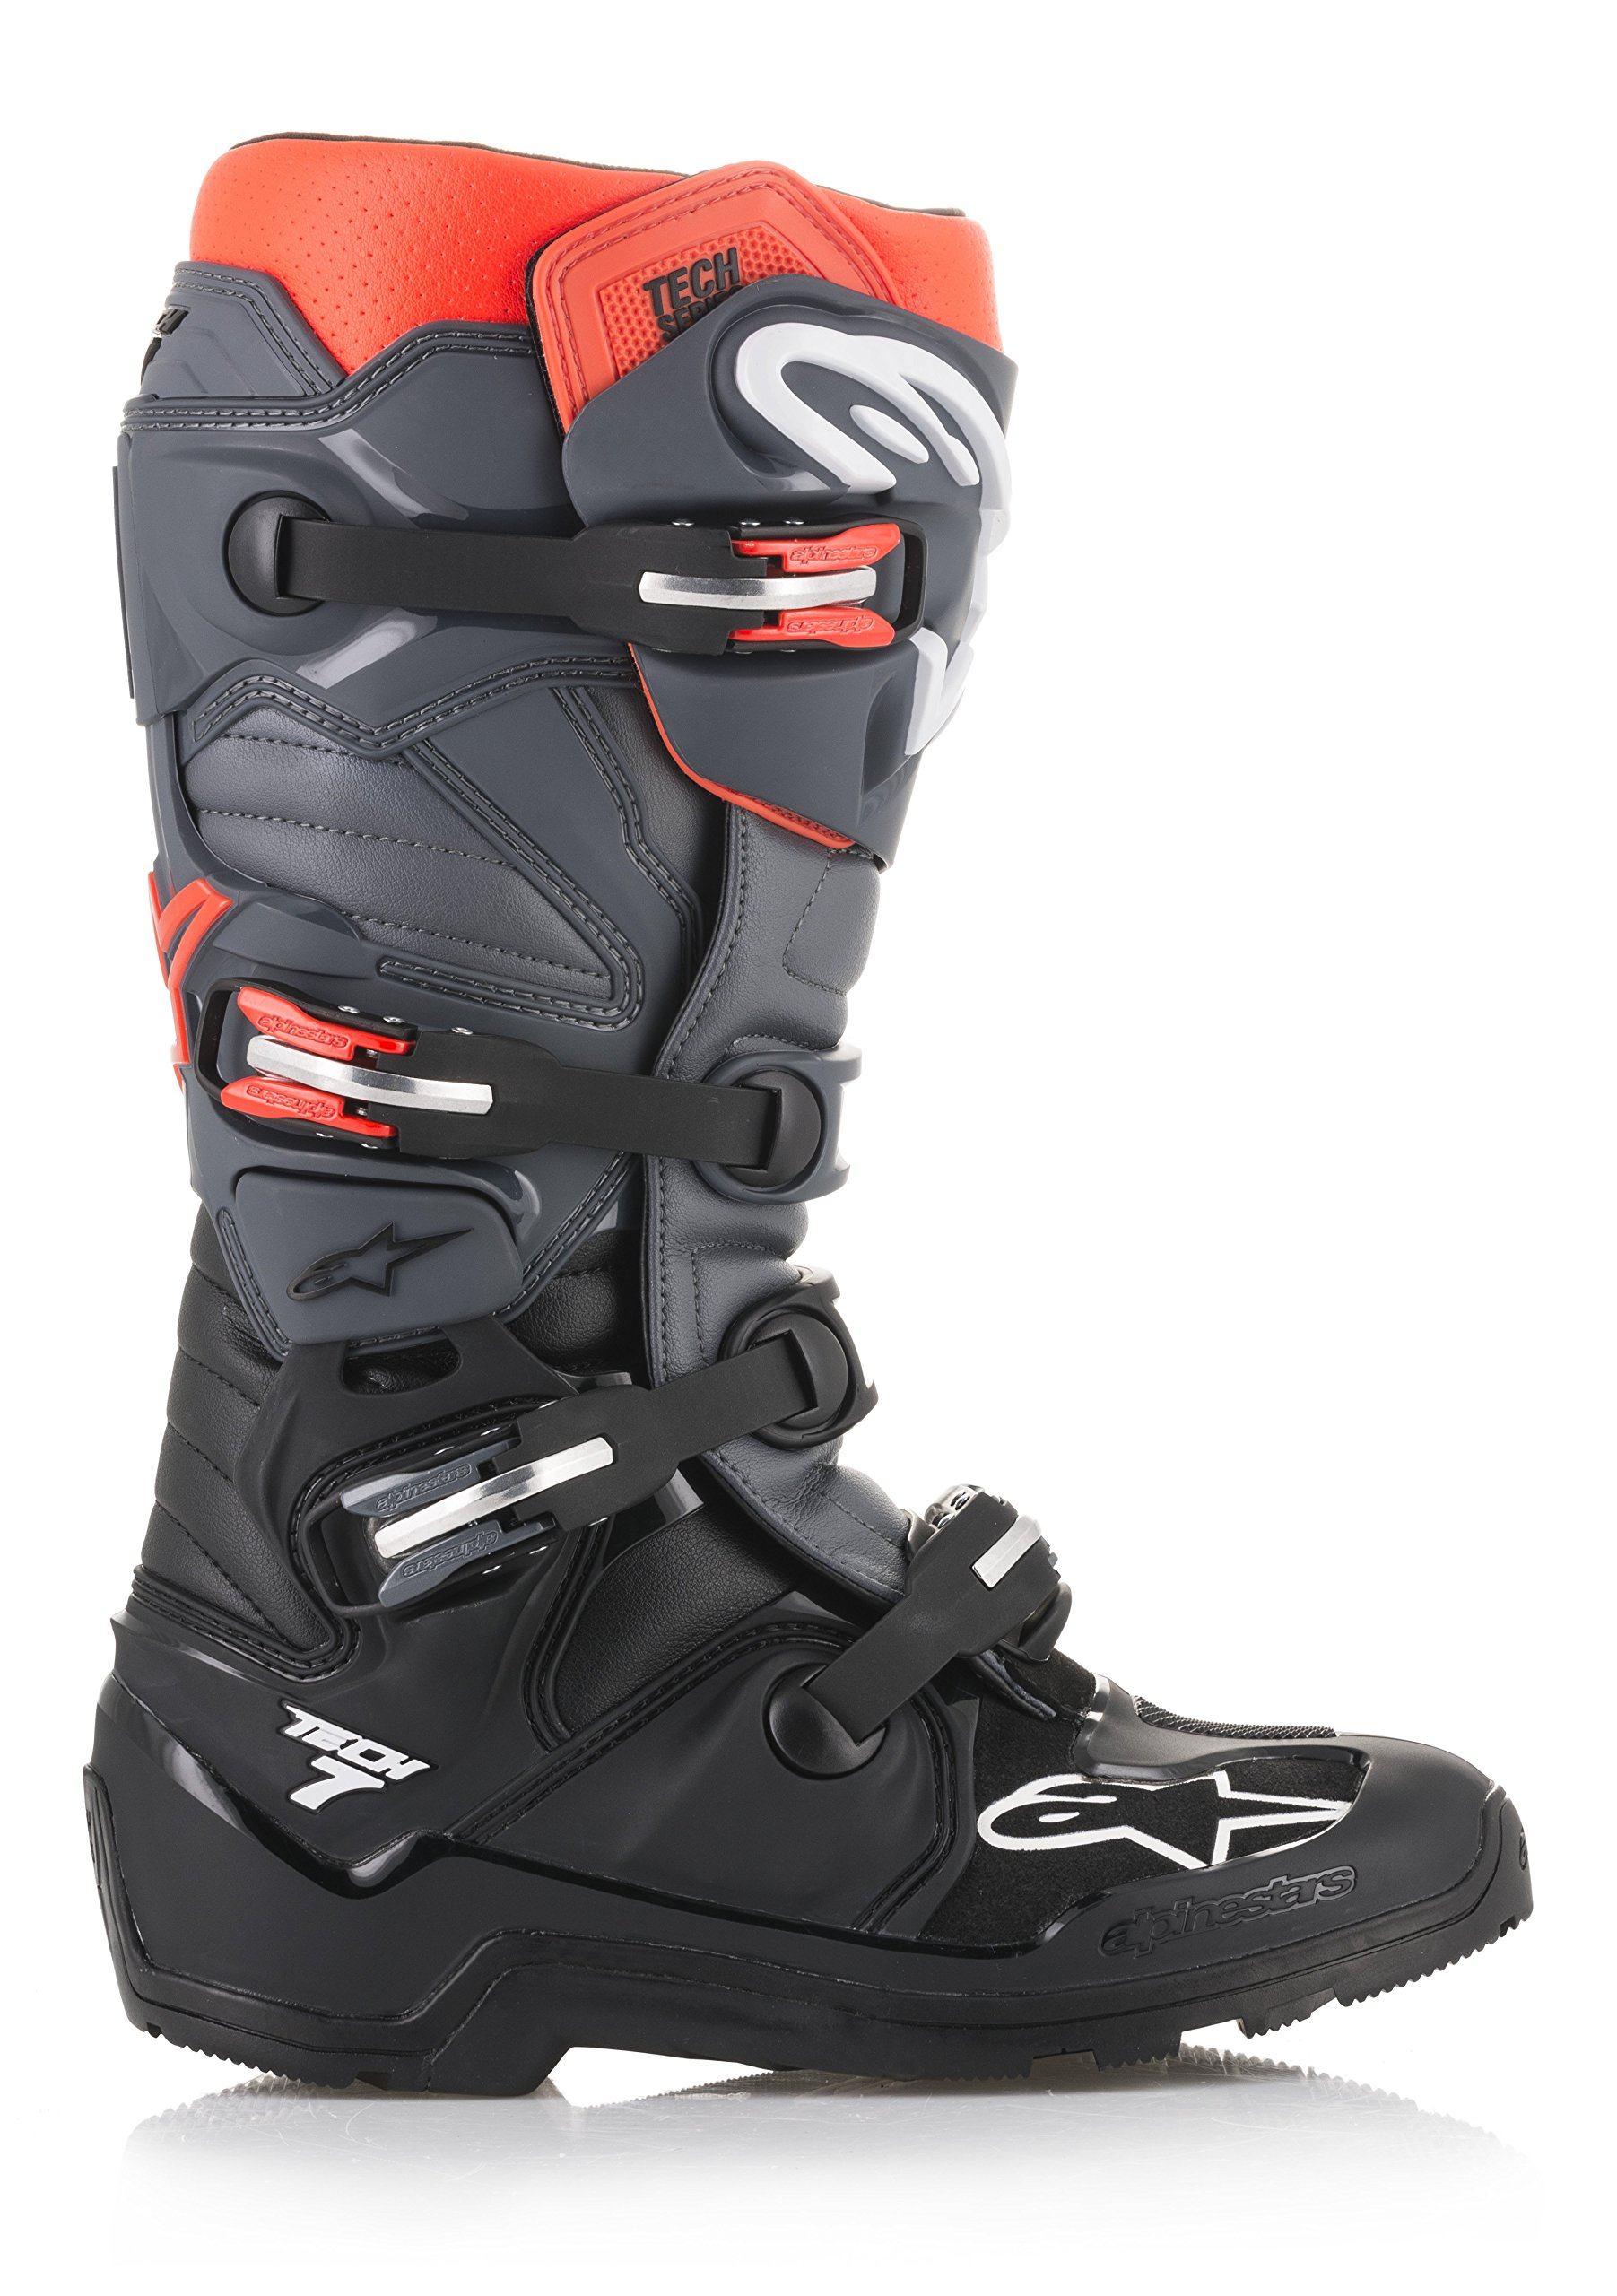 Tech 7 Enduro Off-Road Motocross Boot (13 US, Black Gray Red Fluo)